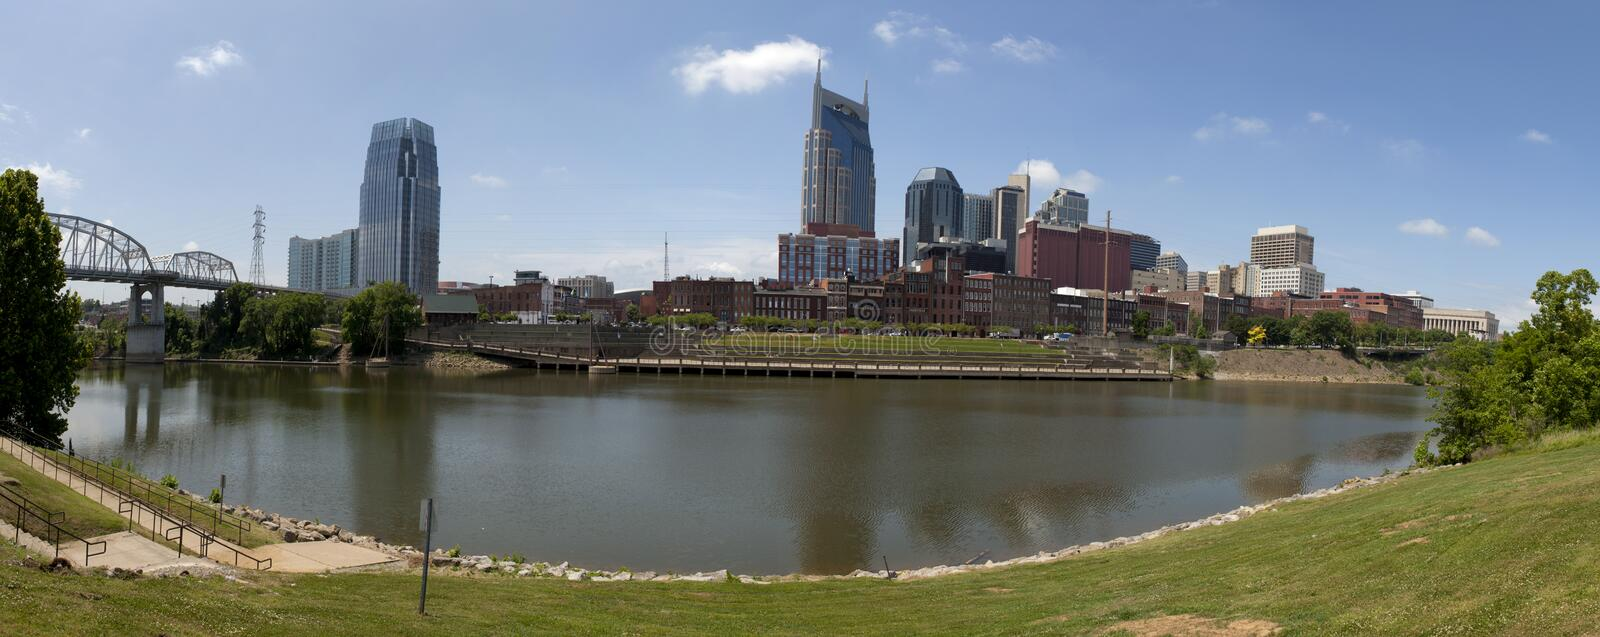 Nashville, Tennessee (panoramique) images stock